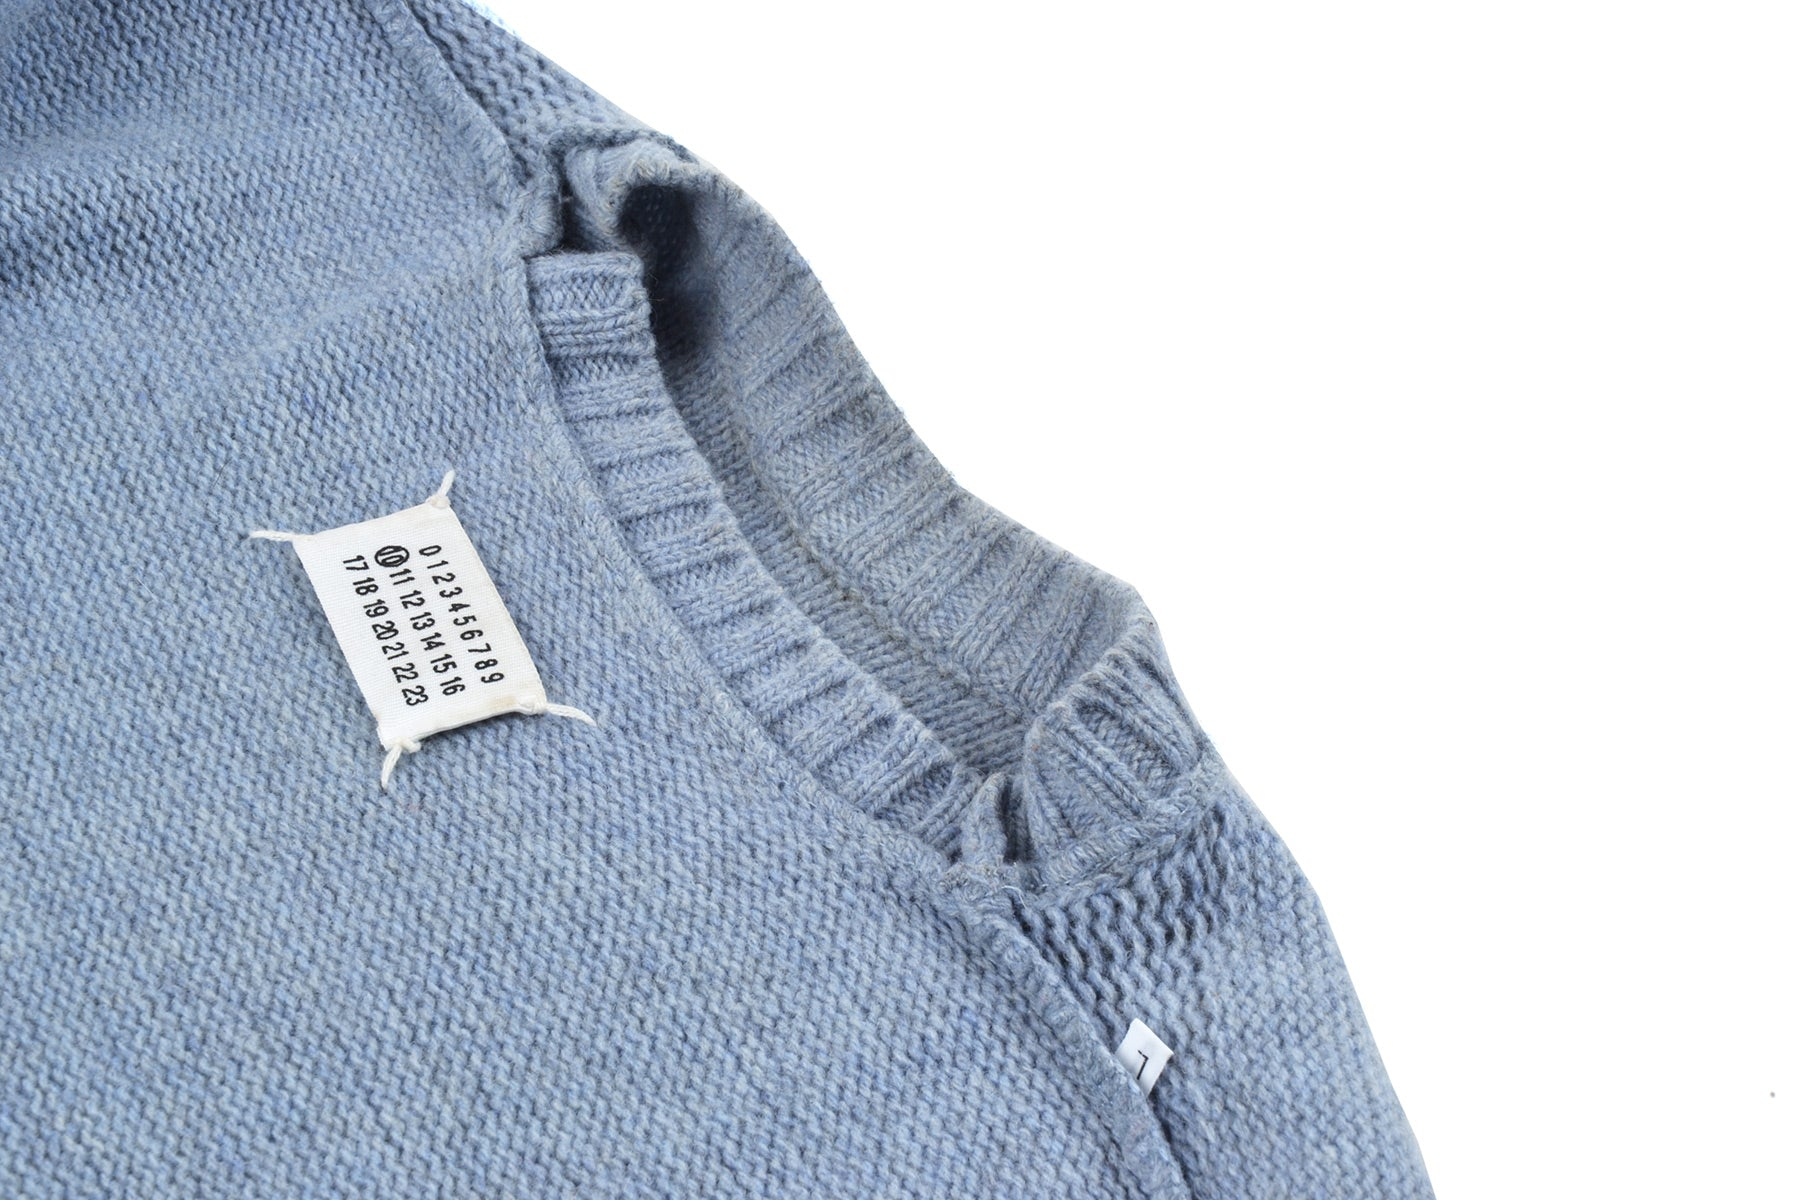 2001 A/W BLUE & GREY MELANGE CREWNECK WITH NECK DETAIL BY MISS DEANNA